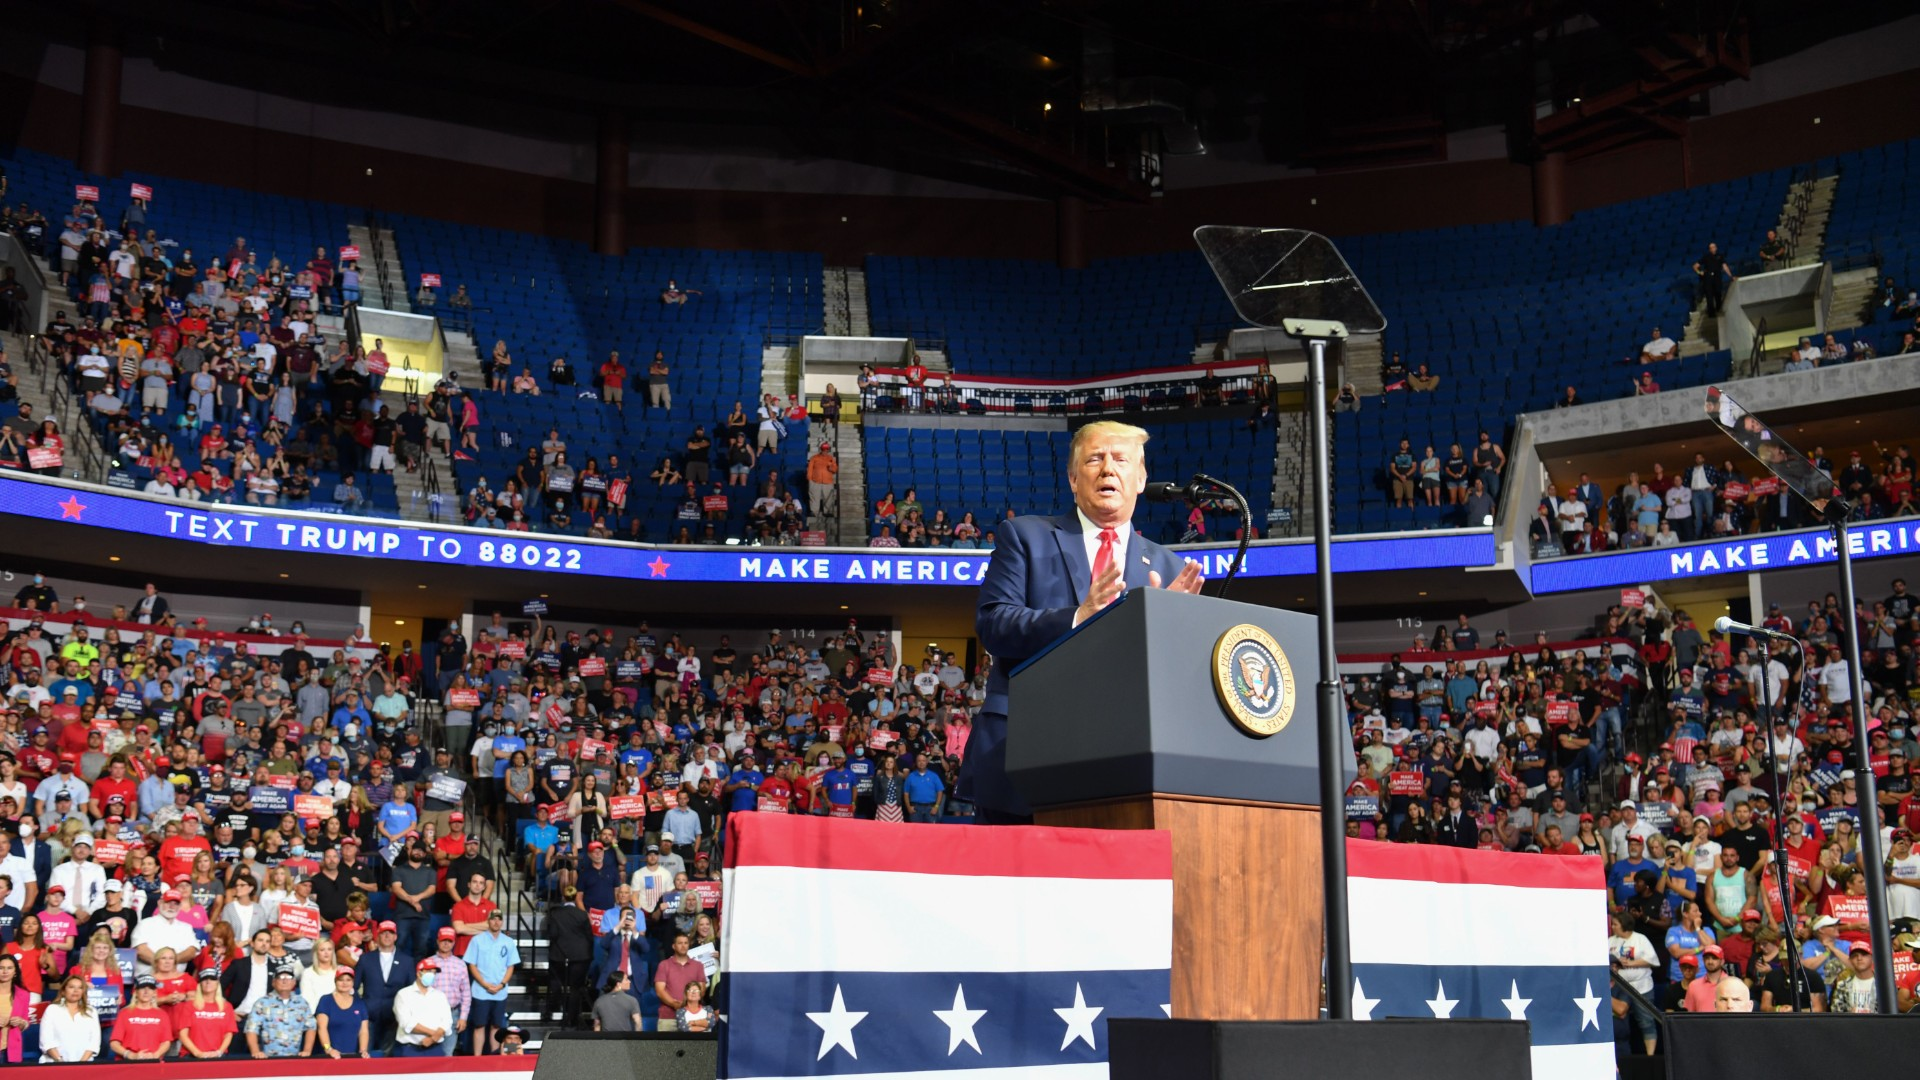 The upper section is seen partially empty as US President Donald Trump speaks during a campaign rally at the BOK Center on June 20, 2020 in Tulsa, Oklahoma. (NICHOLAS KAMM/AFP via Getty Images)